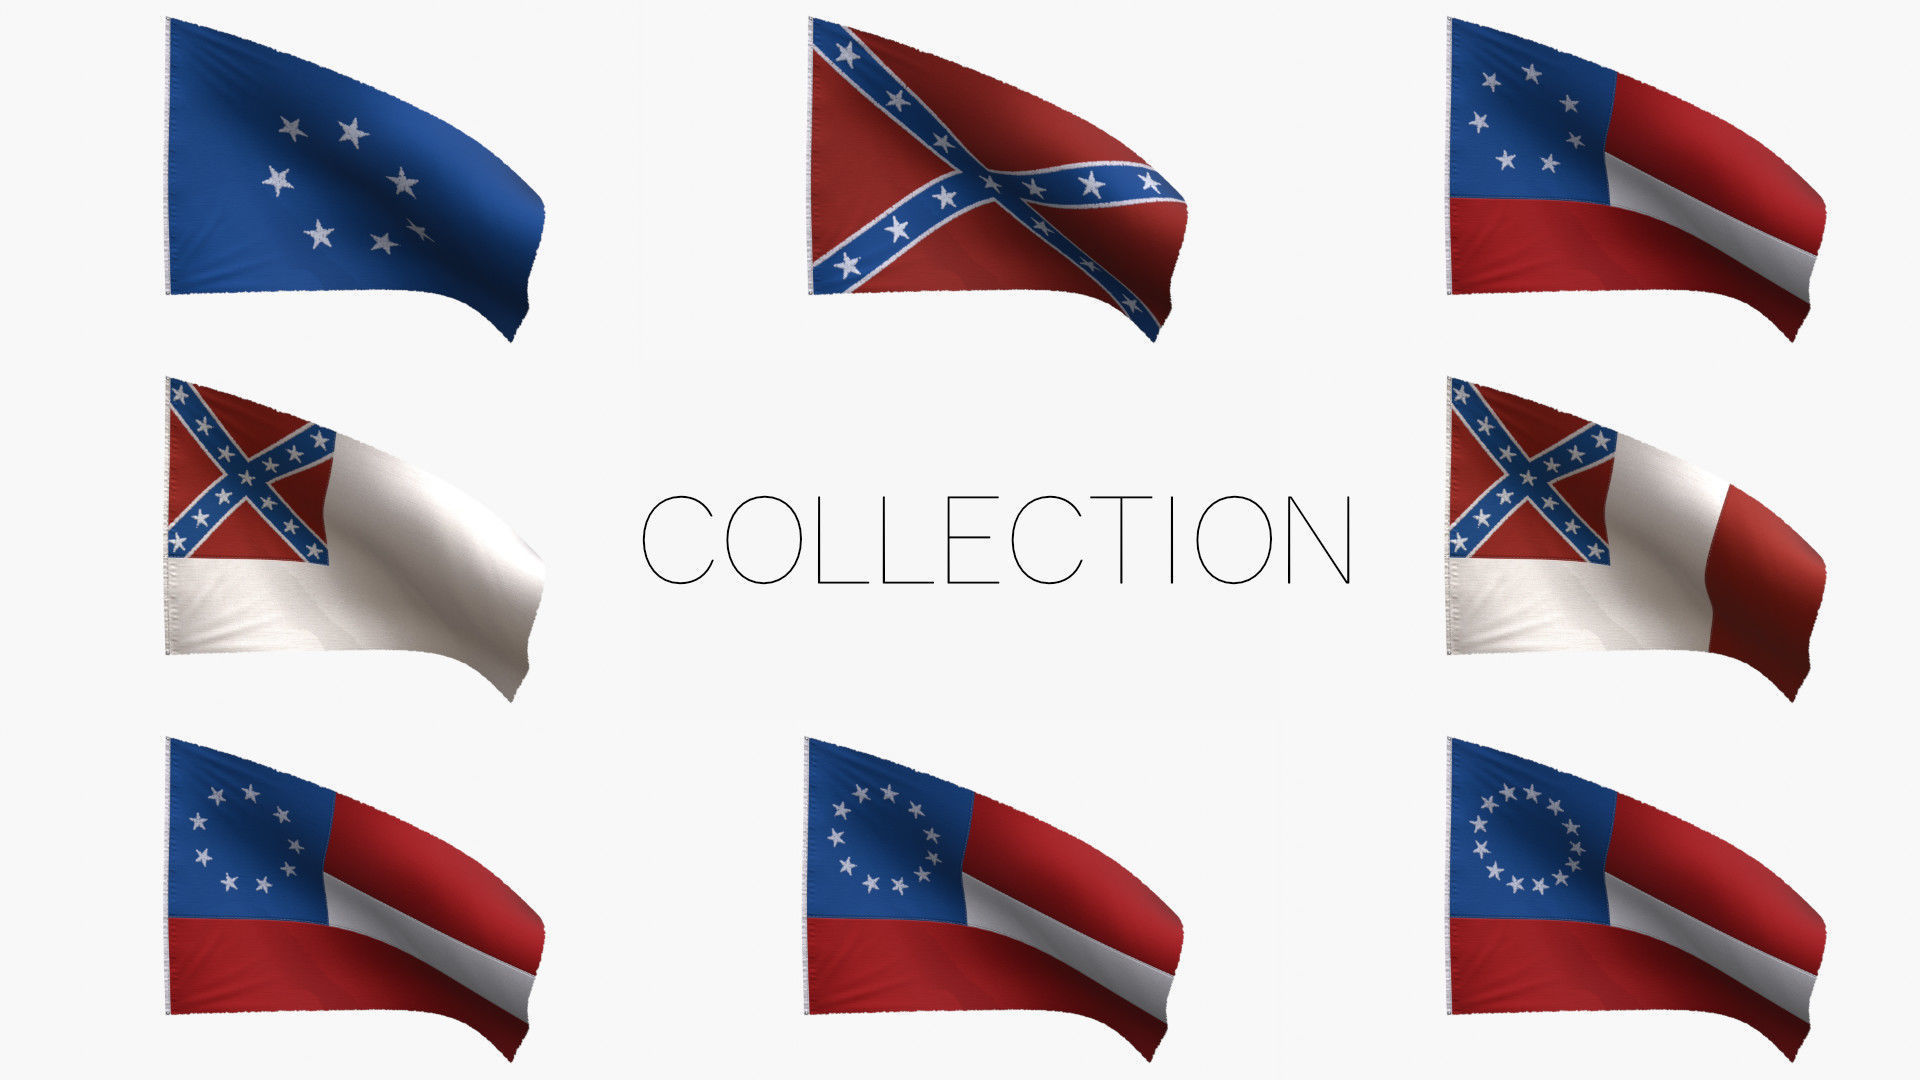 Confederacy Flags Collection